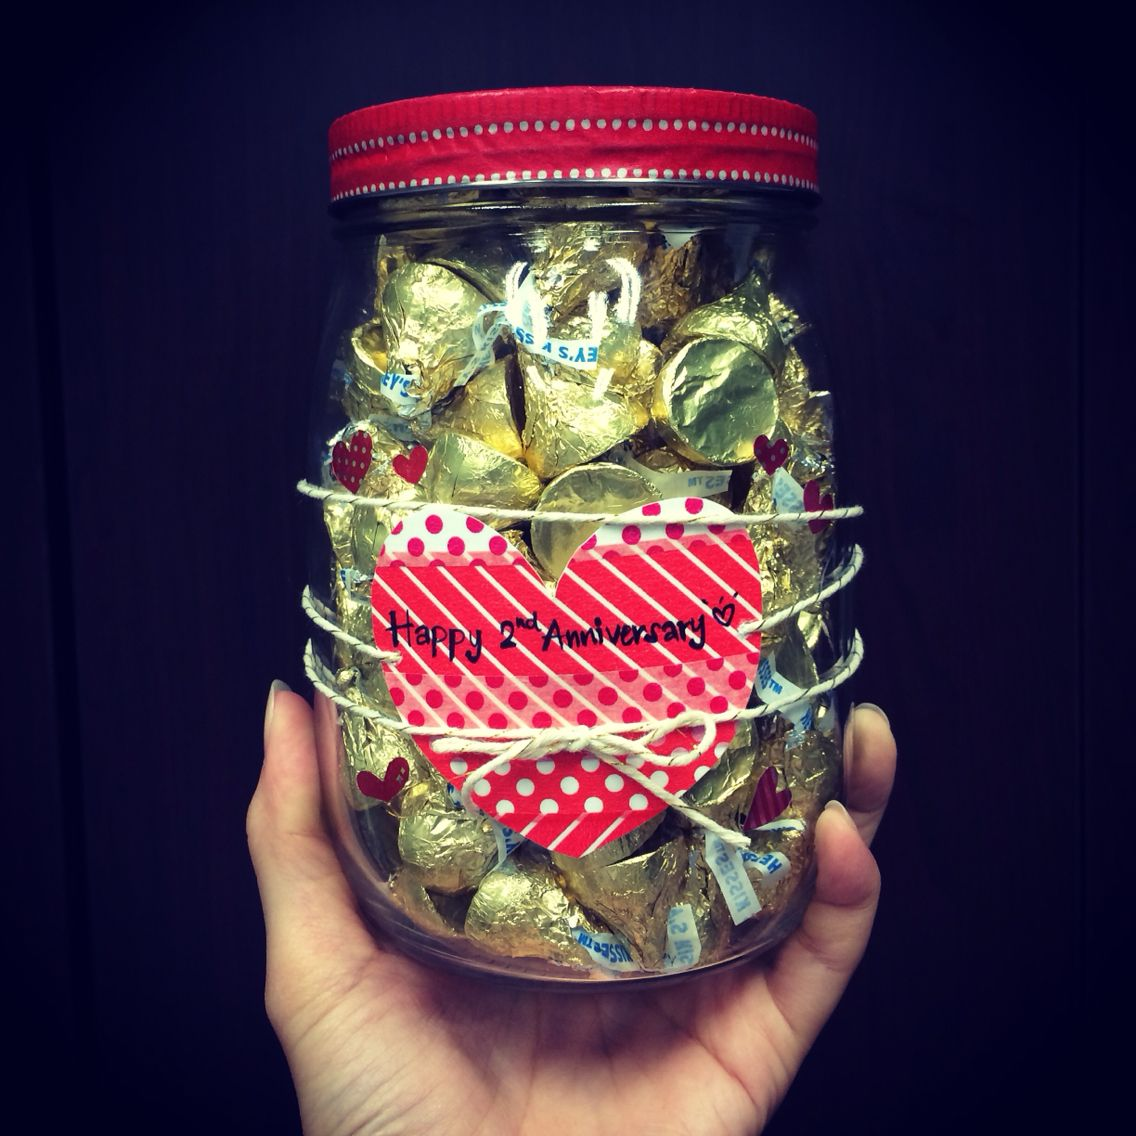 Valentine's day and 2nd anniversary - kiss me everyday: kiss hershey choco in mason jar